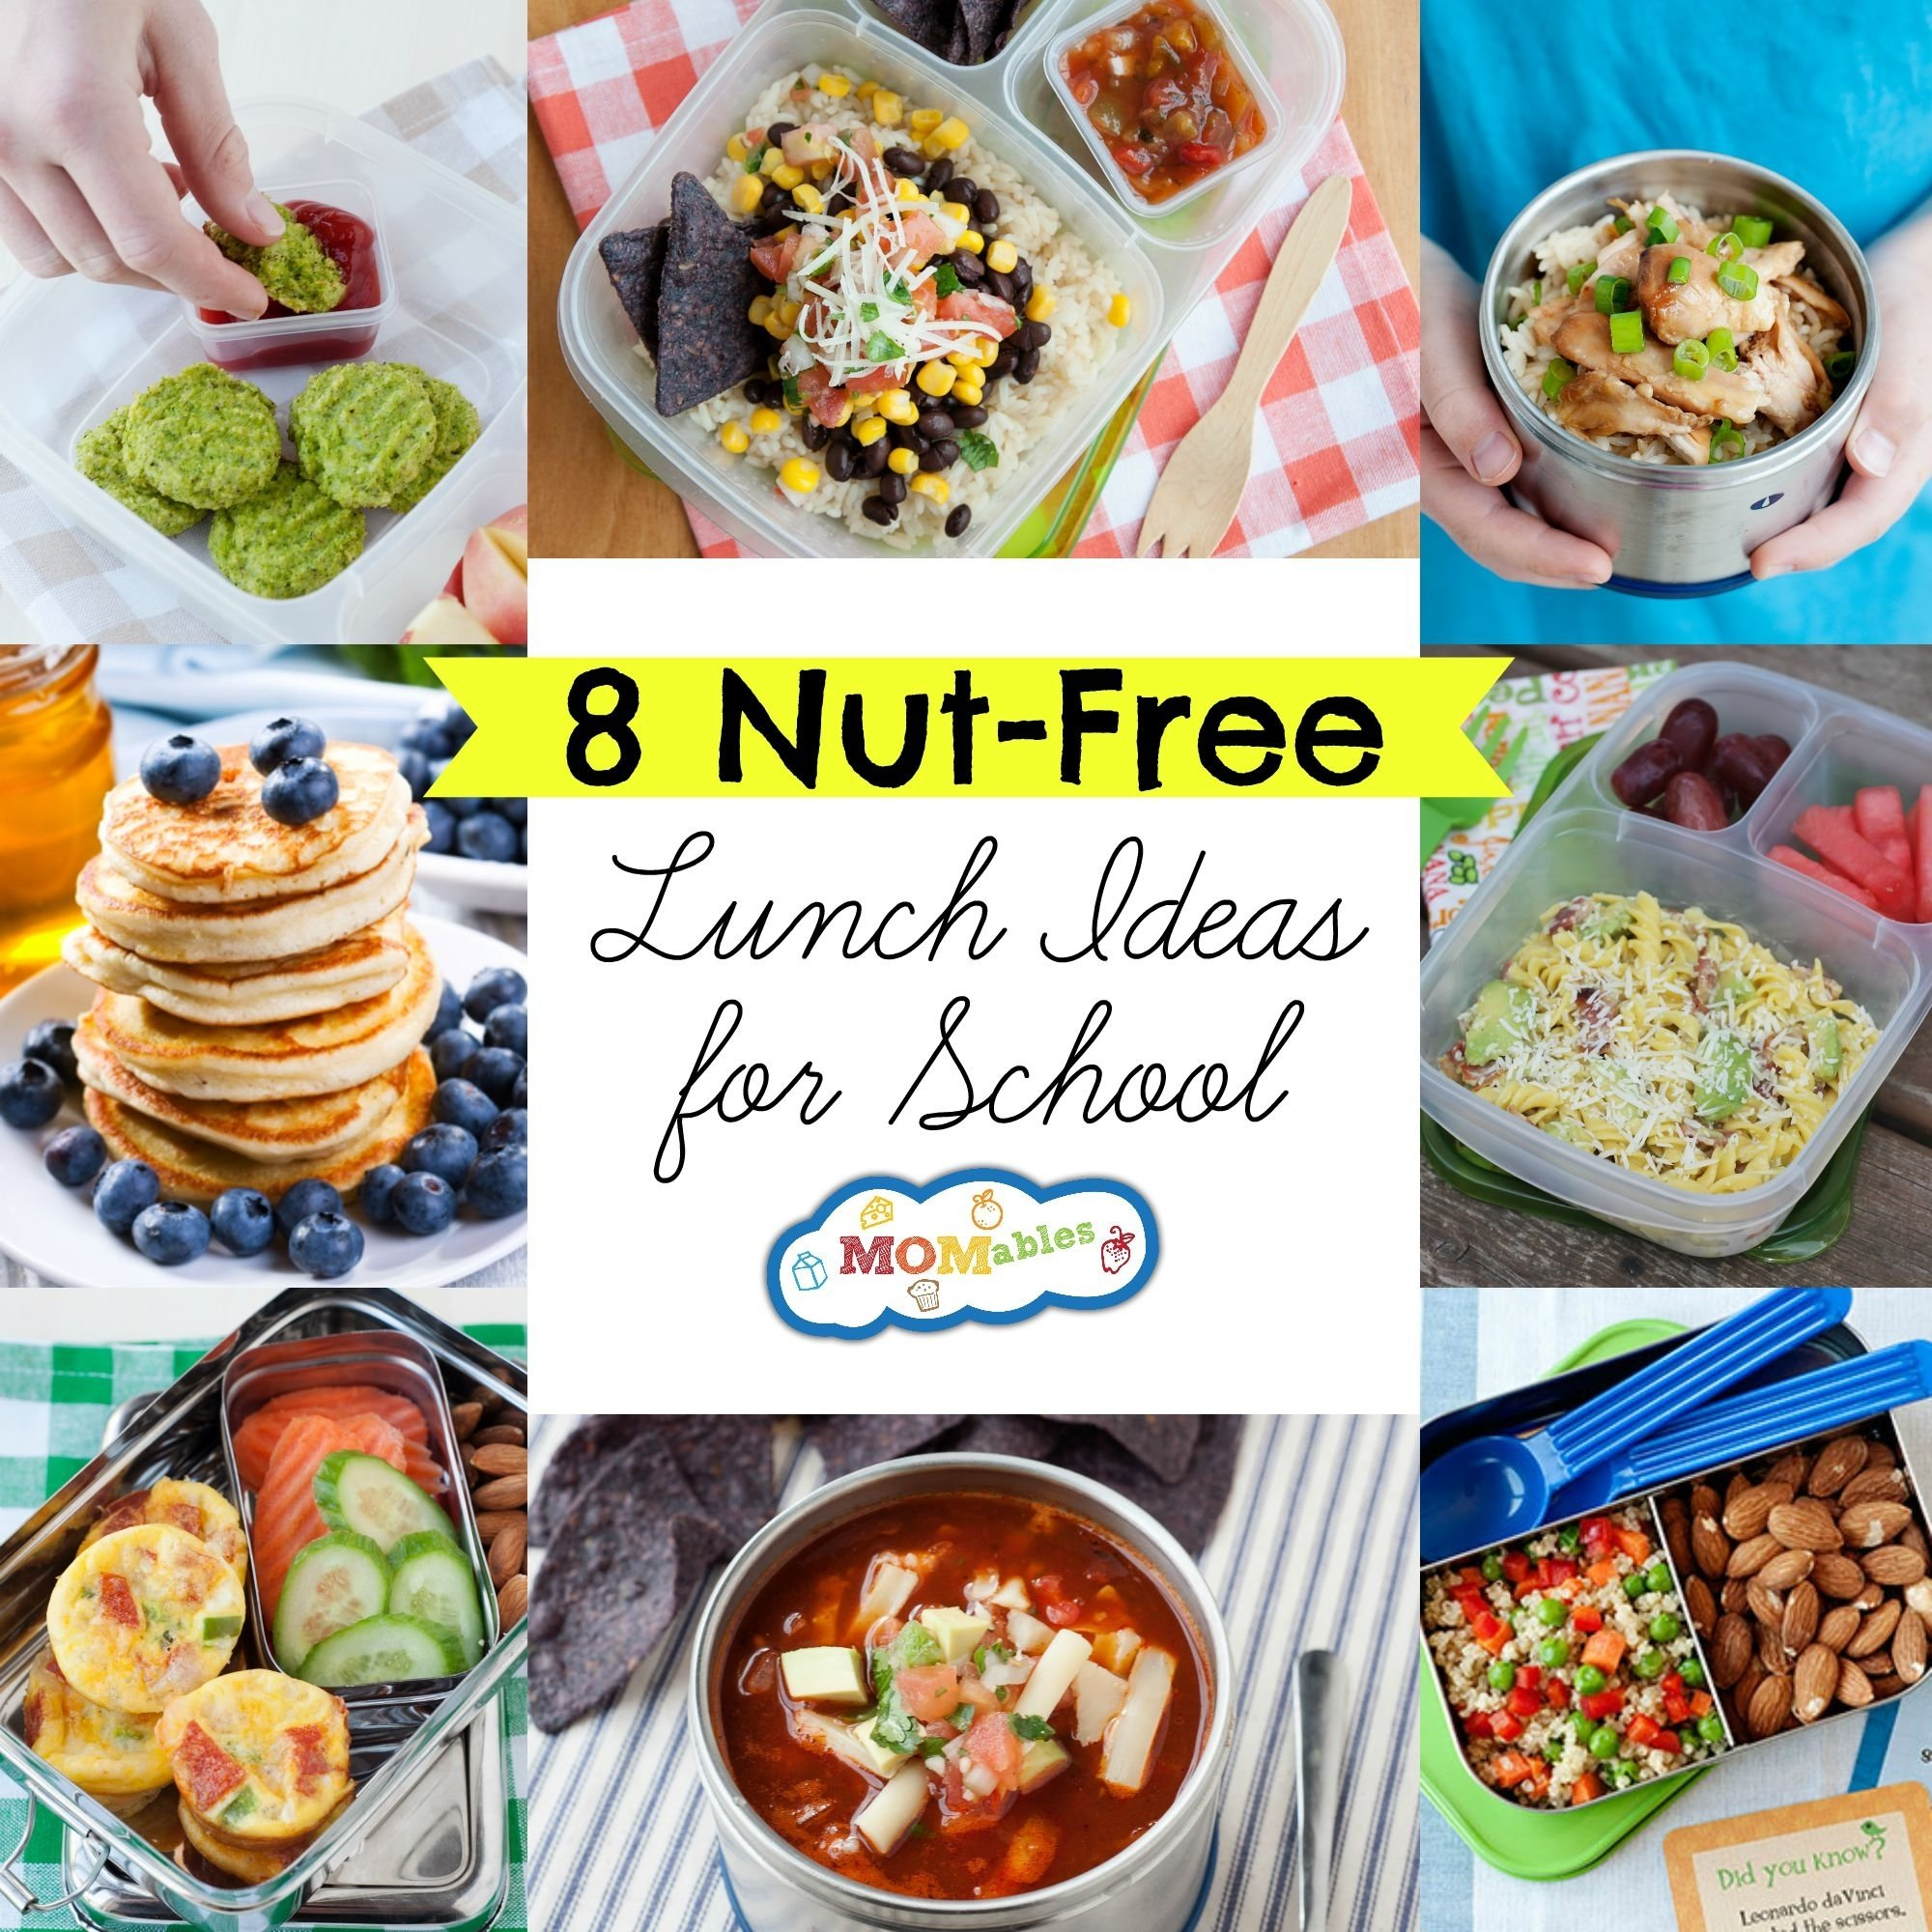 10 Amazing Snack Ideas For Kids School 8 nut free lunch ideas for school momables 3 2020